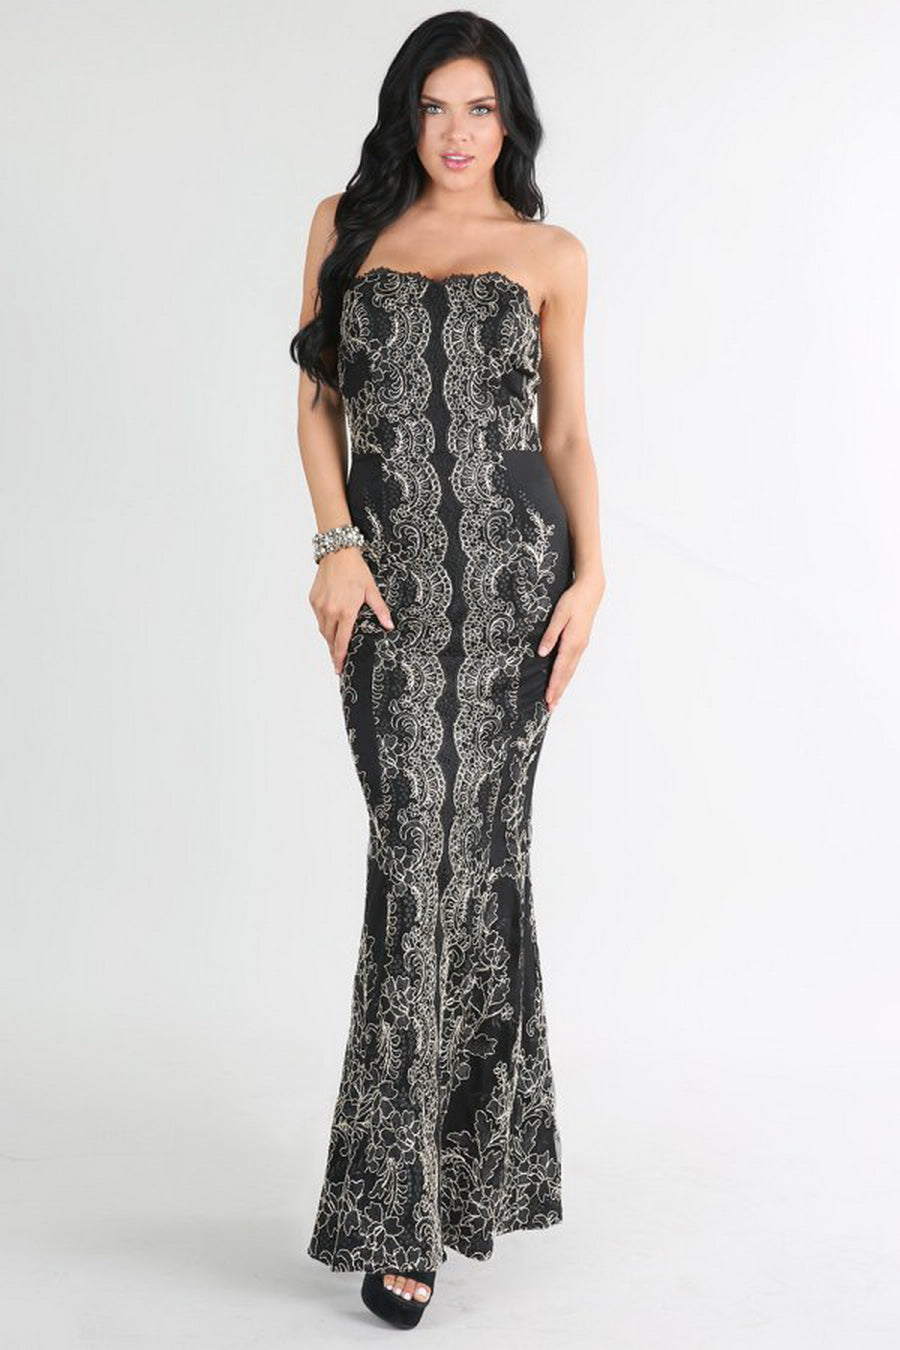 Black And Gold Metallic Strapless Sweetheart Lace Long Dress